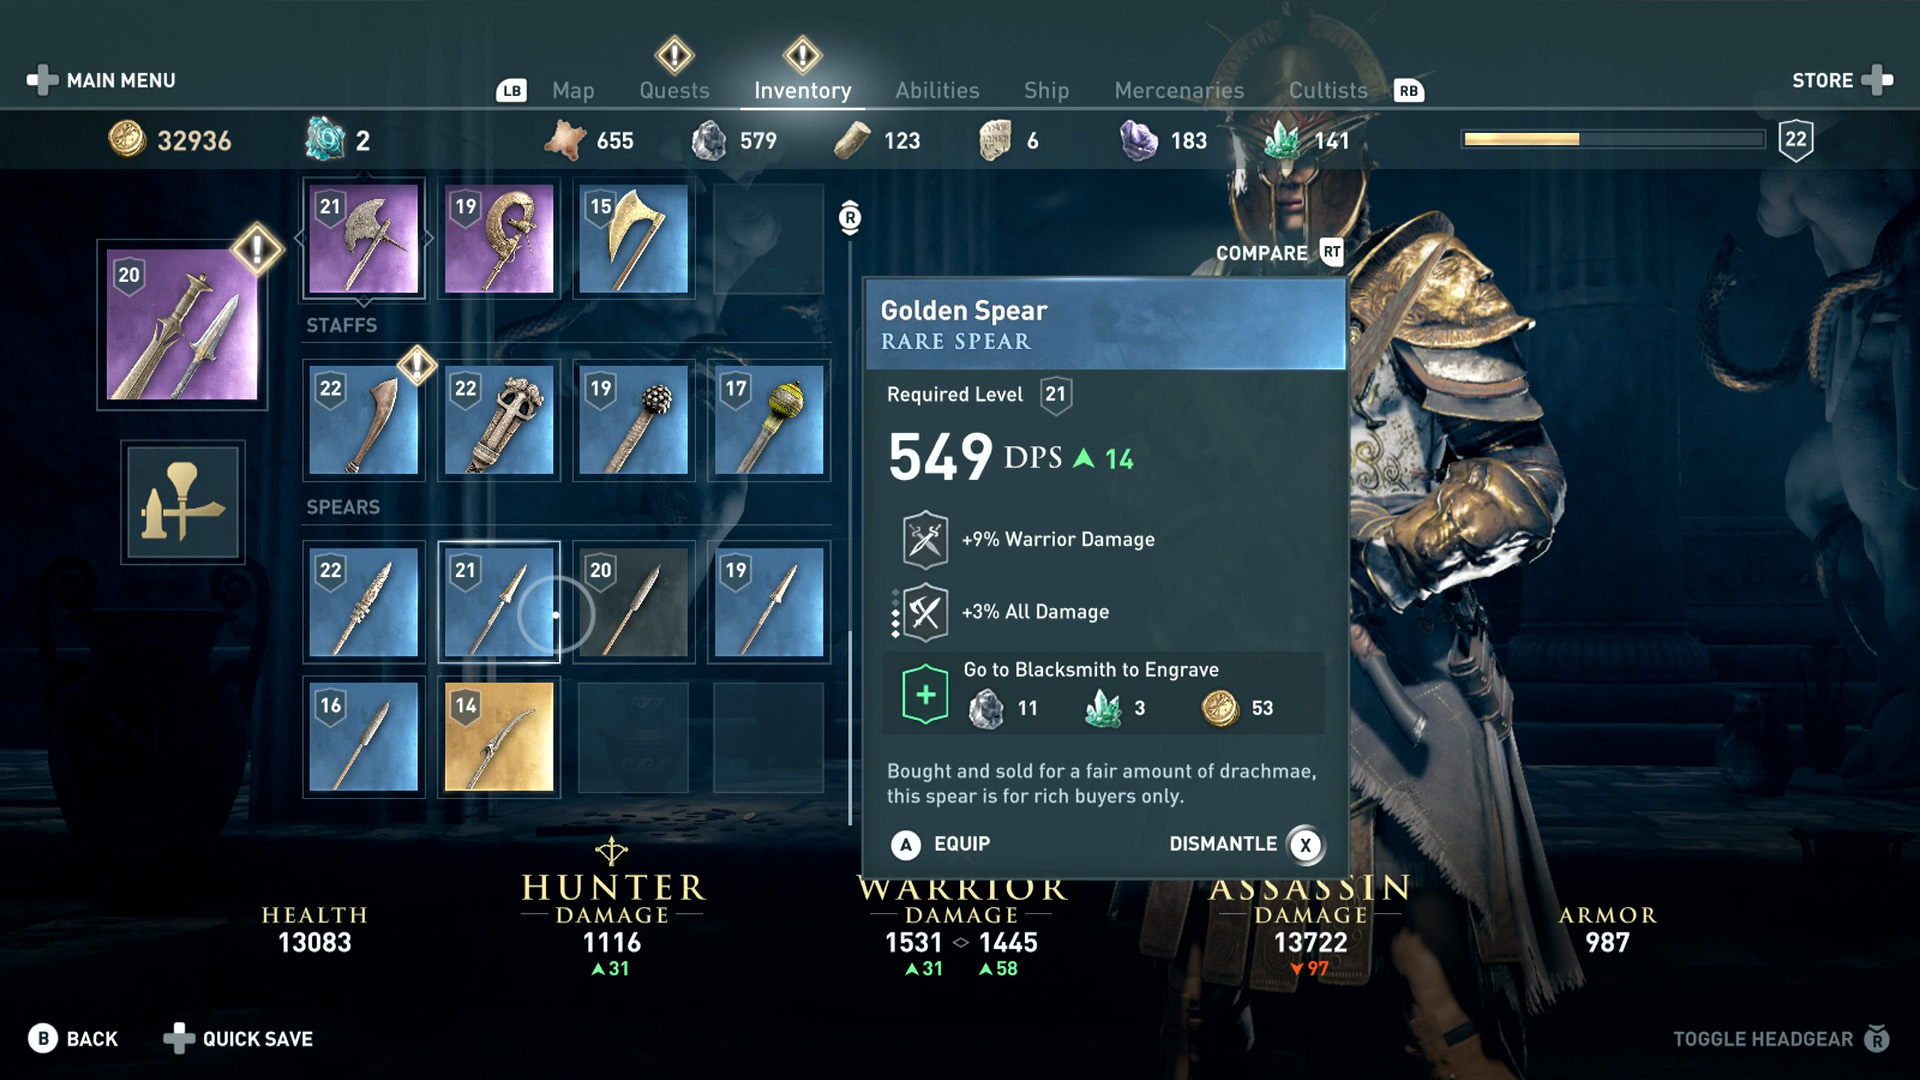 Items in the inventory for Assassin's Creed Odyssey.